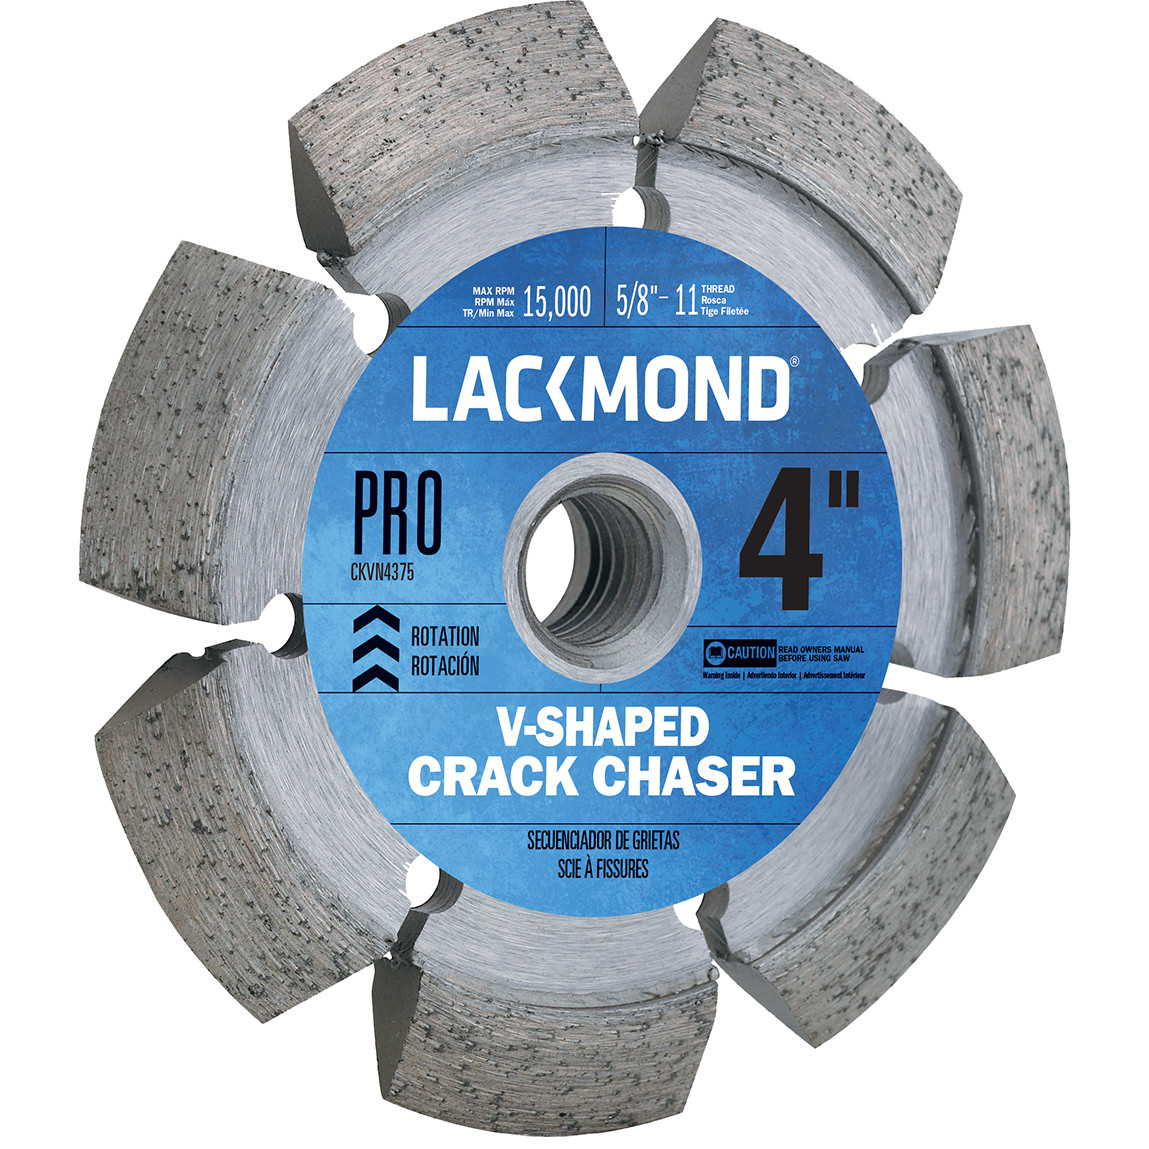 4-Inch Crack Chaser Wheel with 5/8-11 Nut